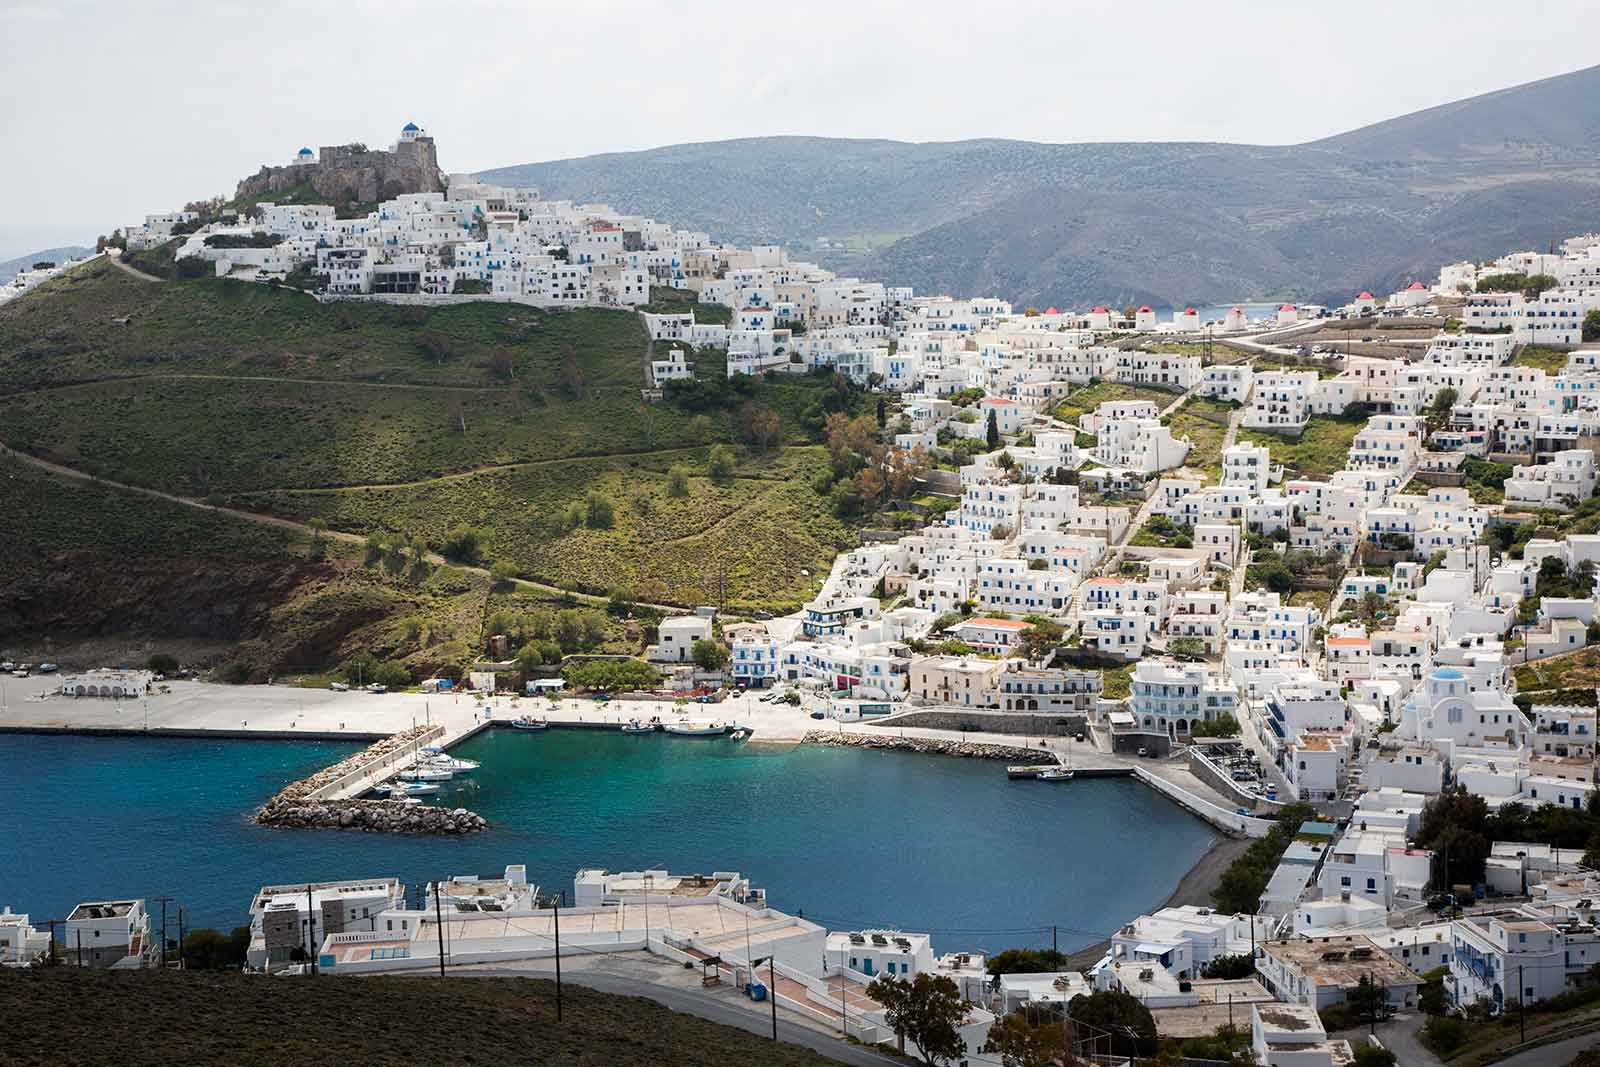 Chora amazes visitors with its unique architecture. The white houses, with their blue windows, wooden balconies and outdoor stairs, give it a traditional Greek charm.